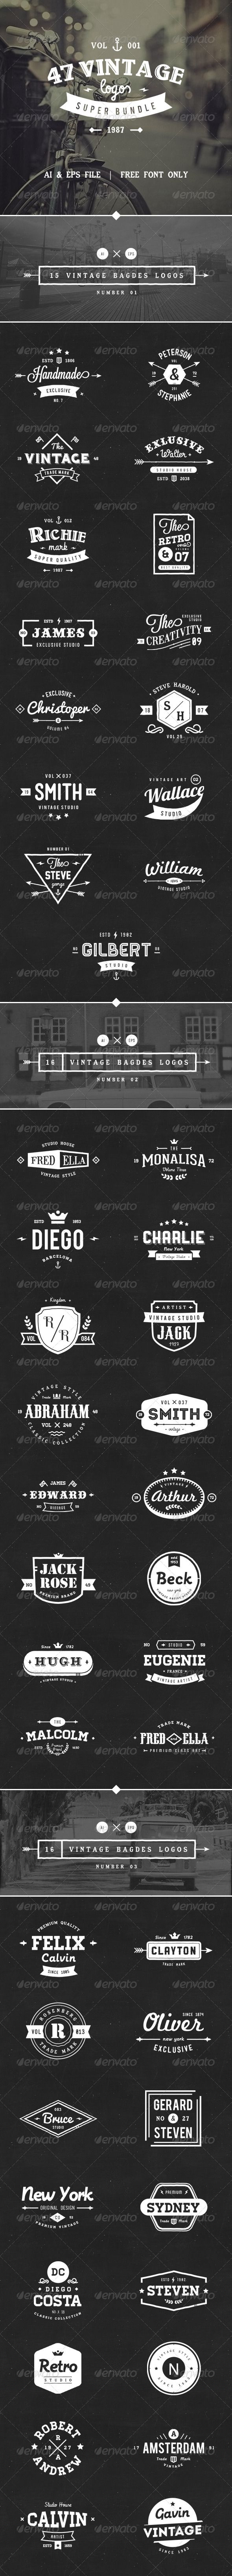 47 Vintage Logos Bundle Template | Buy and Download: http://graphicriver.net/item/47-vintage-logos-bundle/8411488?ref=ksioks